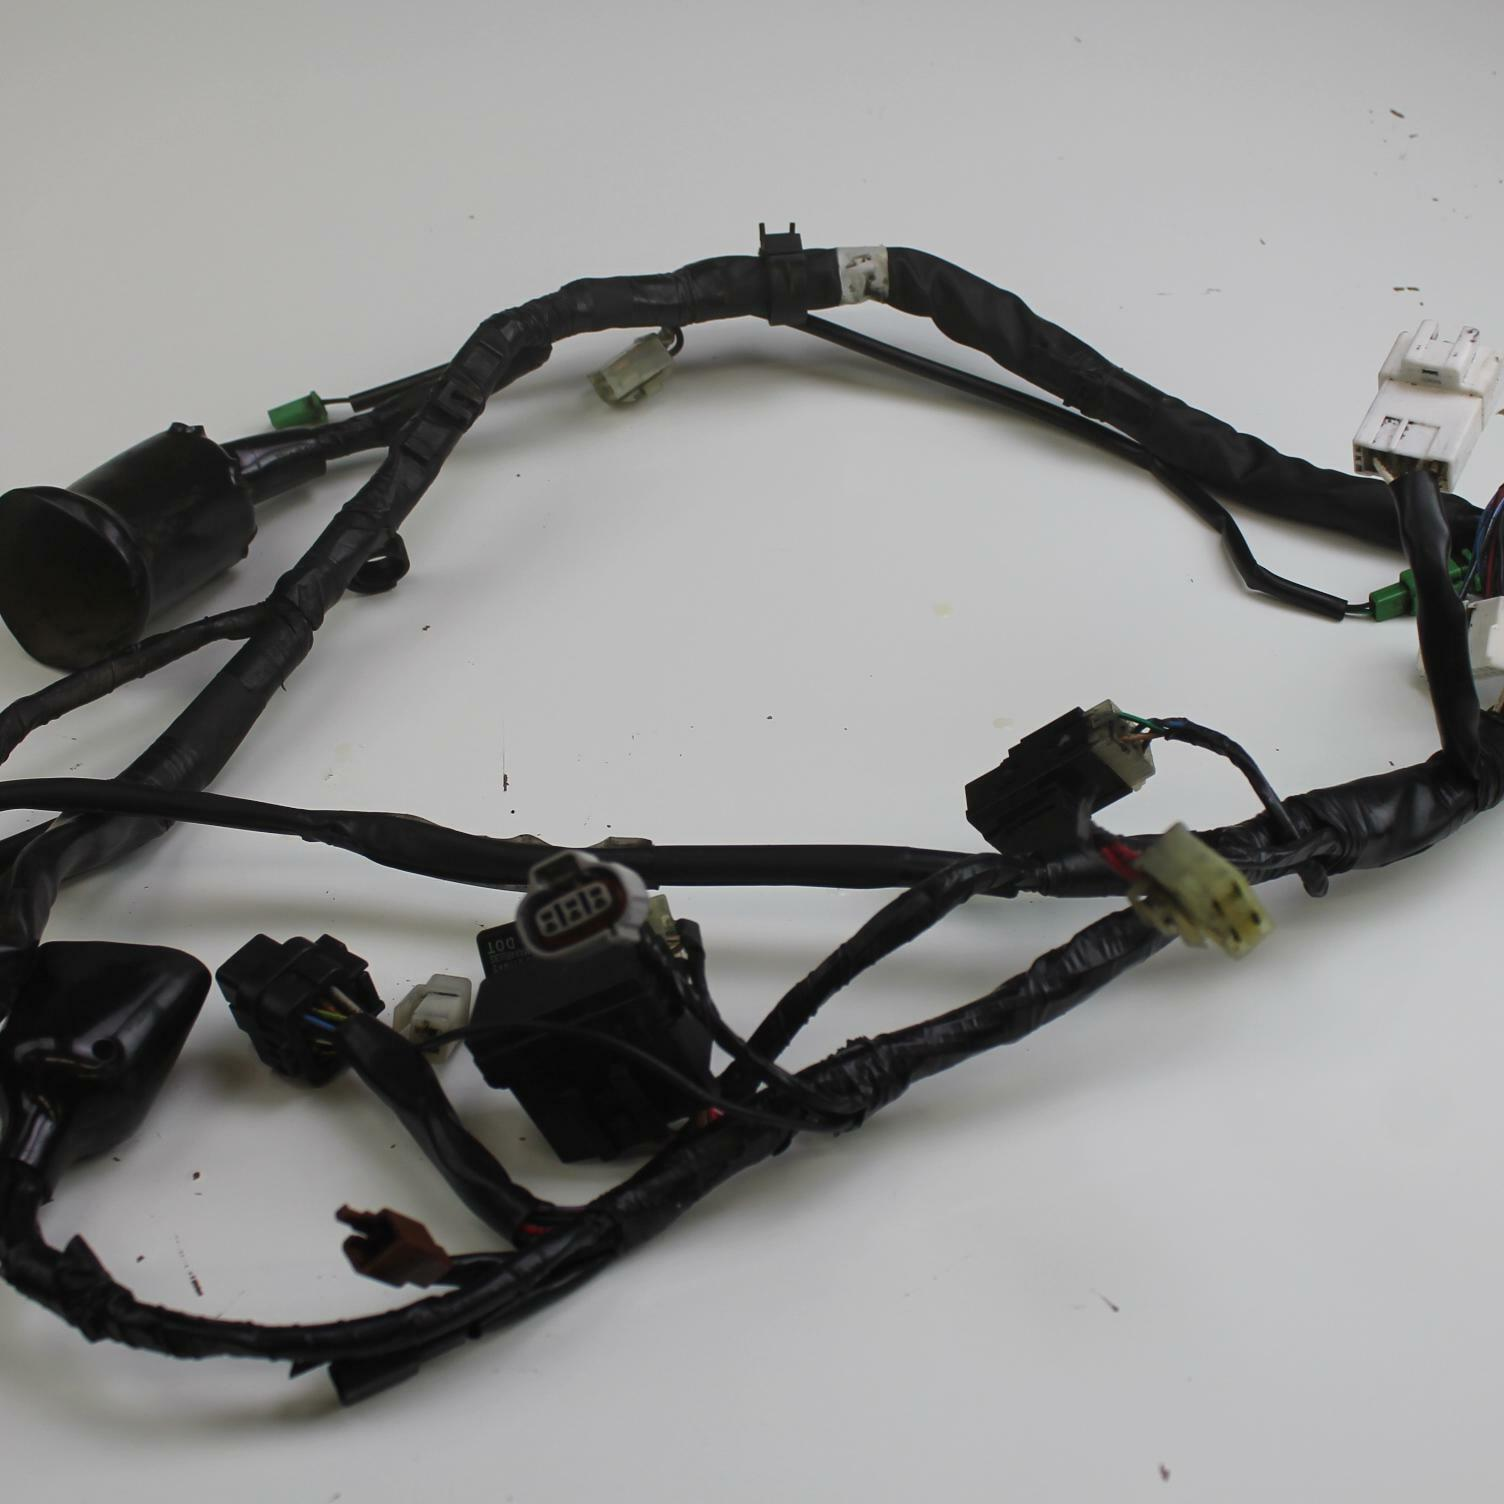 2002 Yamaha Fz1 Main Engine Wiring Harness Motor Wire Loom 2371 1 Of 11only Available